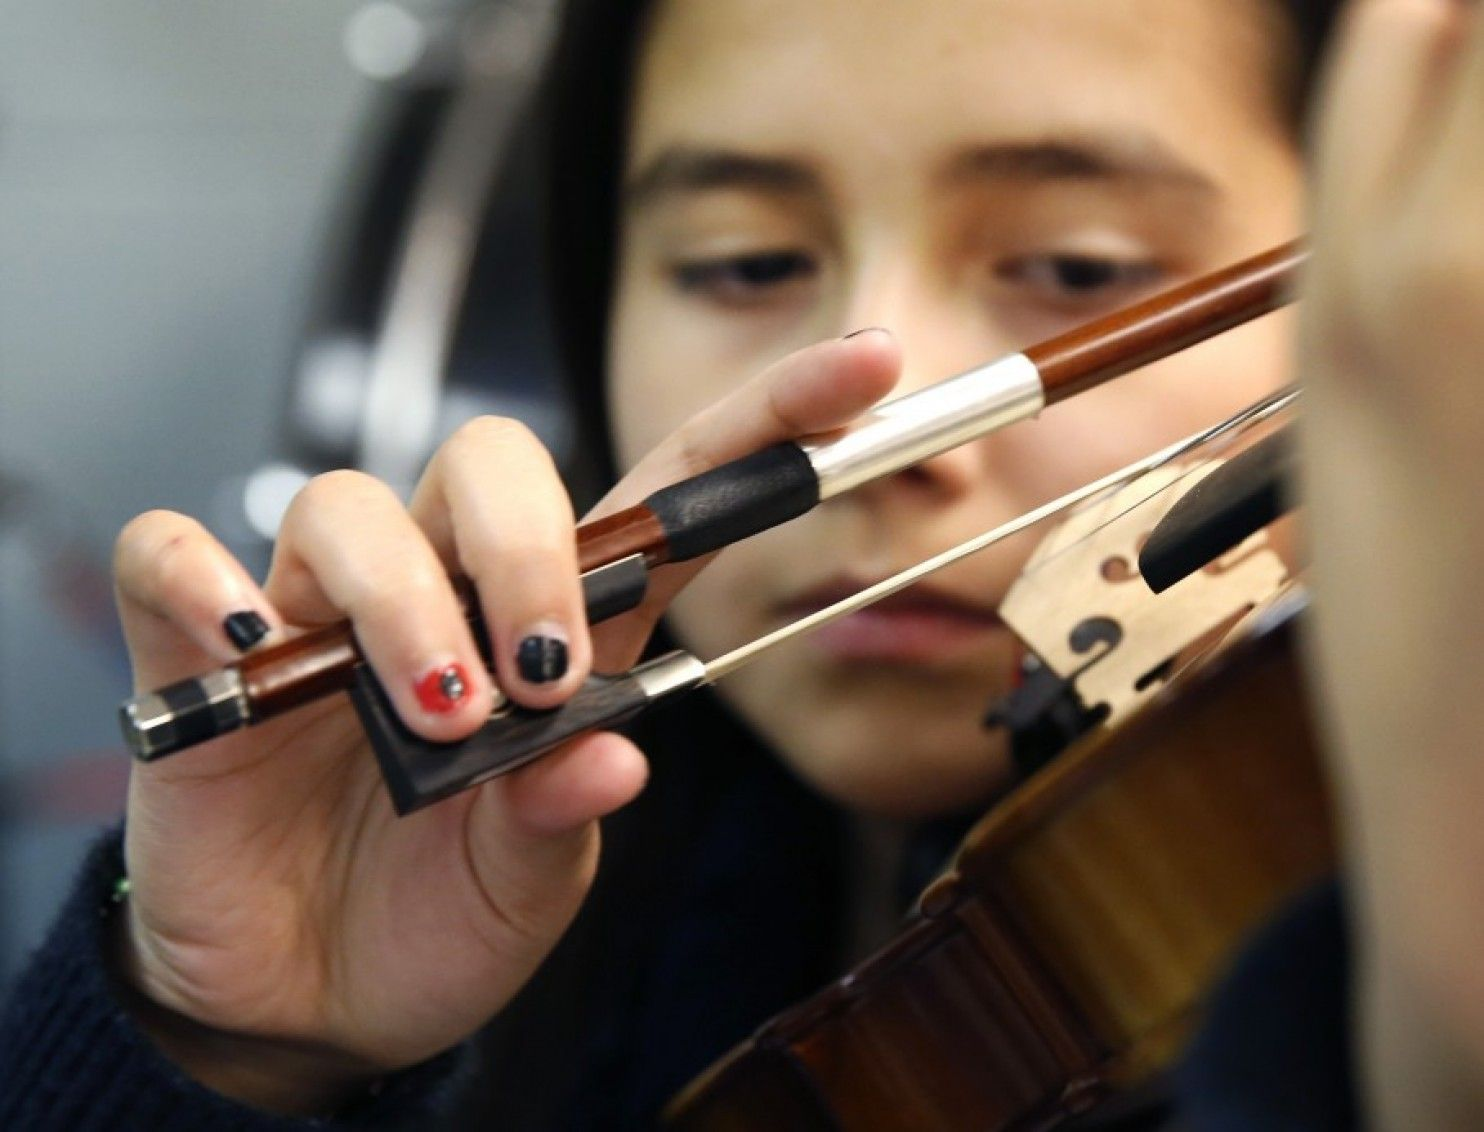 Music lessons spur emotional and behavioral growth in children, new study says - The Washington Post